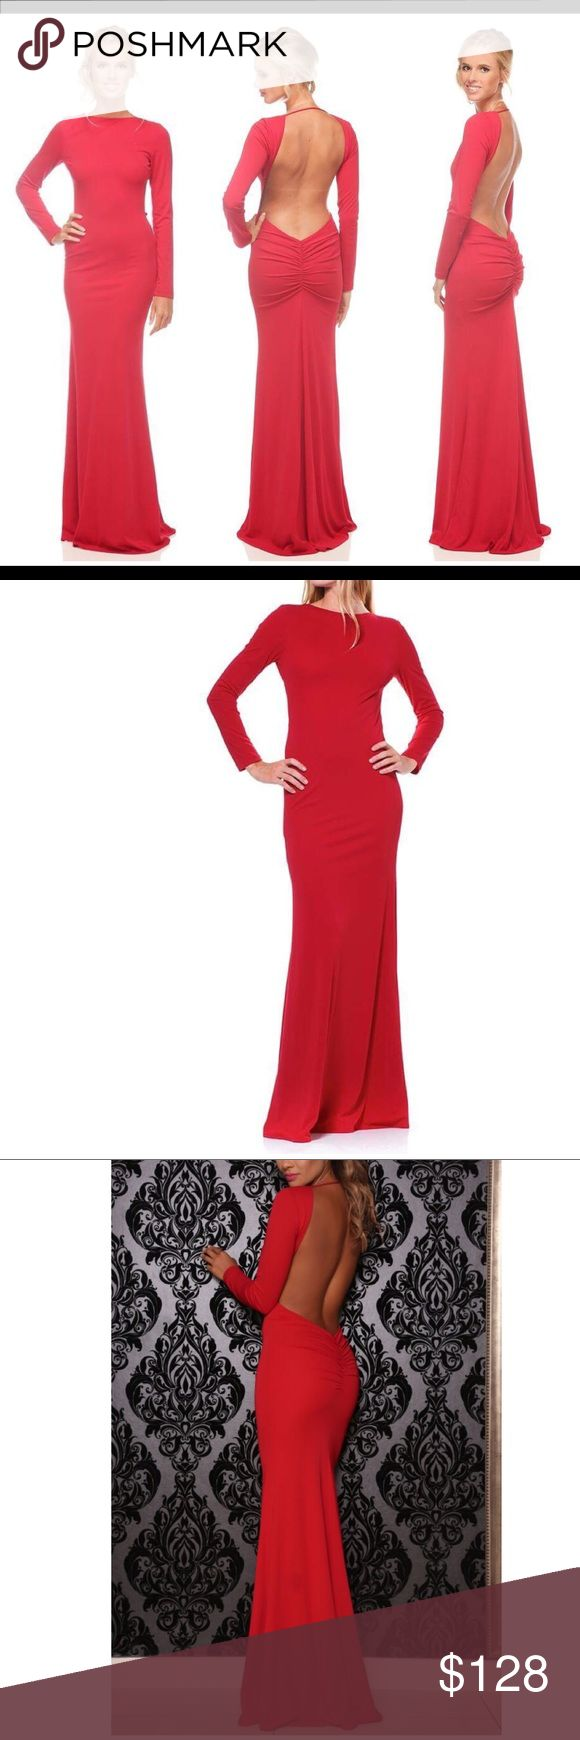 RED - Gorgeous Evening Gown - MED NWT -- RED DRESS. Absolutely gorgeous and sophisticated long sleeve, backless, ruched bottom detail gown by celebrity designer Abyss by Abby. Dress is called Saba. Perfect for the holidays. Compliments curves beautifully.   measurements:  waist: 26 in hips: 34 in total length:  approx: 61 in. dress has 1-3 inch stretch allowance. Abyss By Abby Dresses Backless